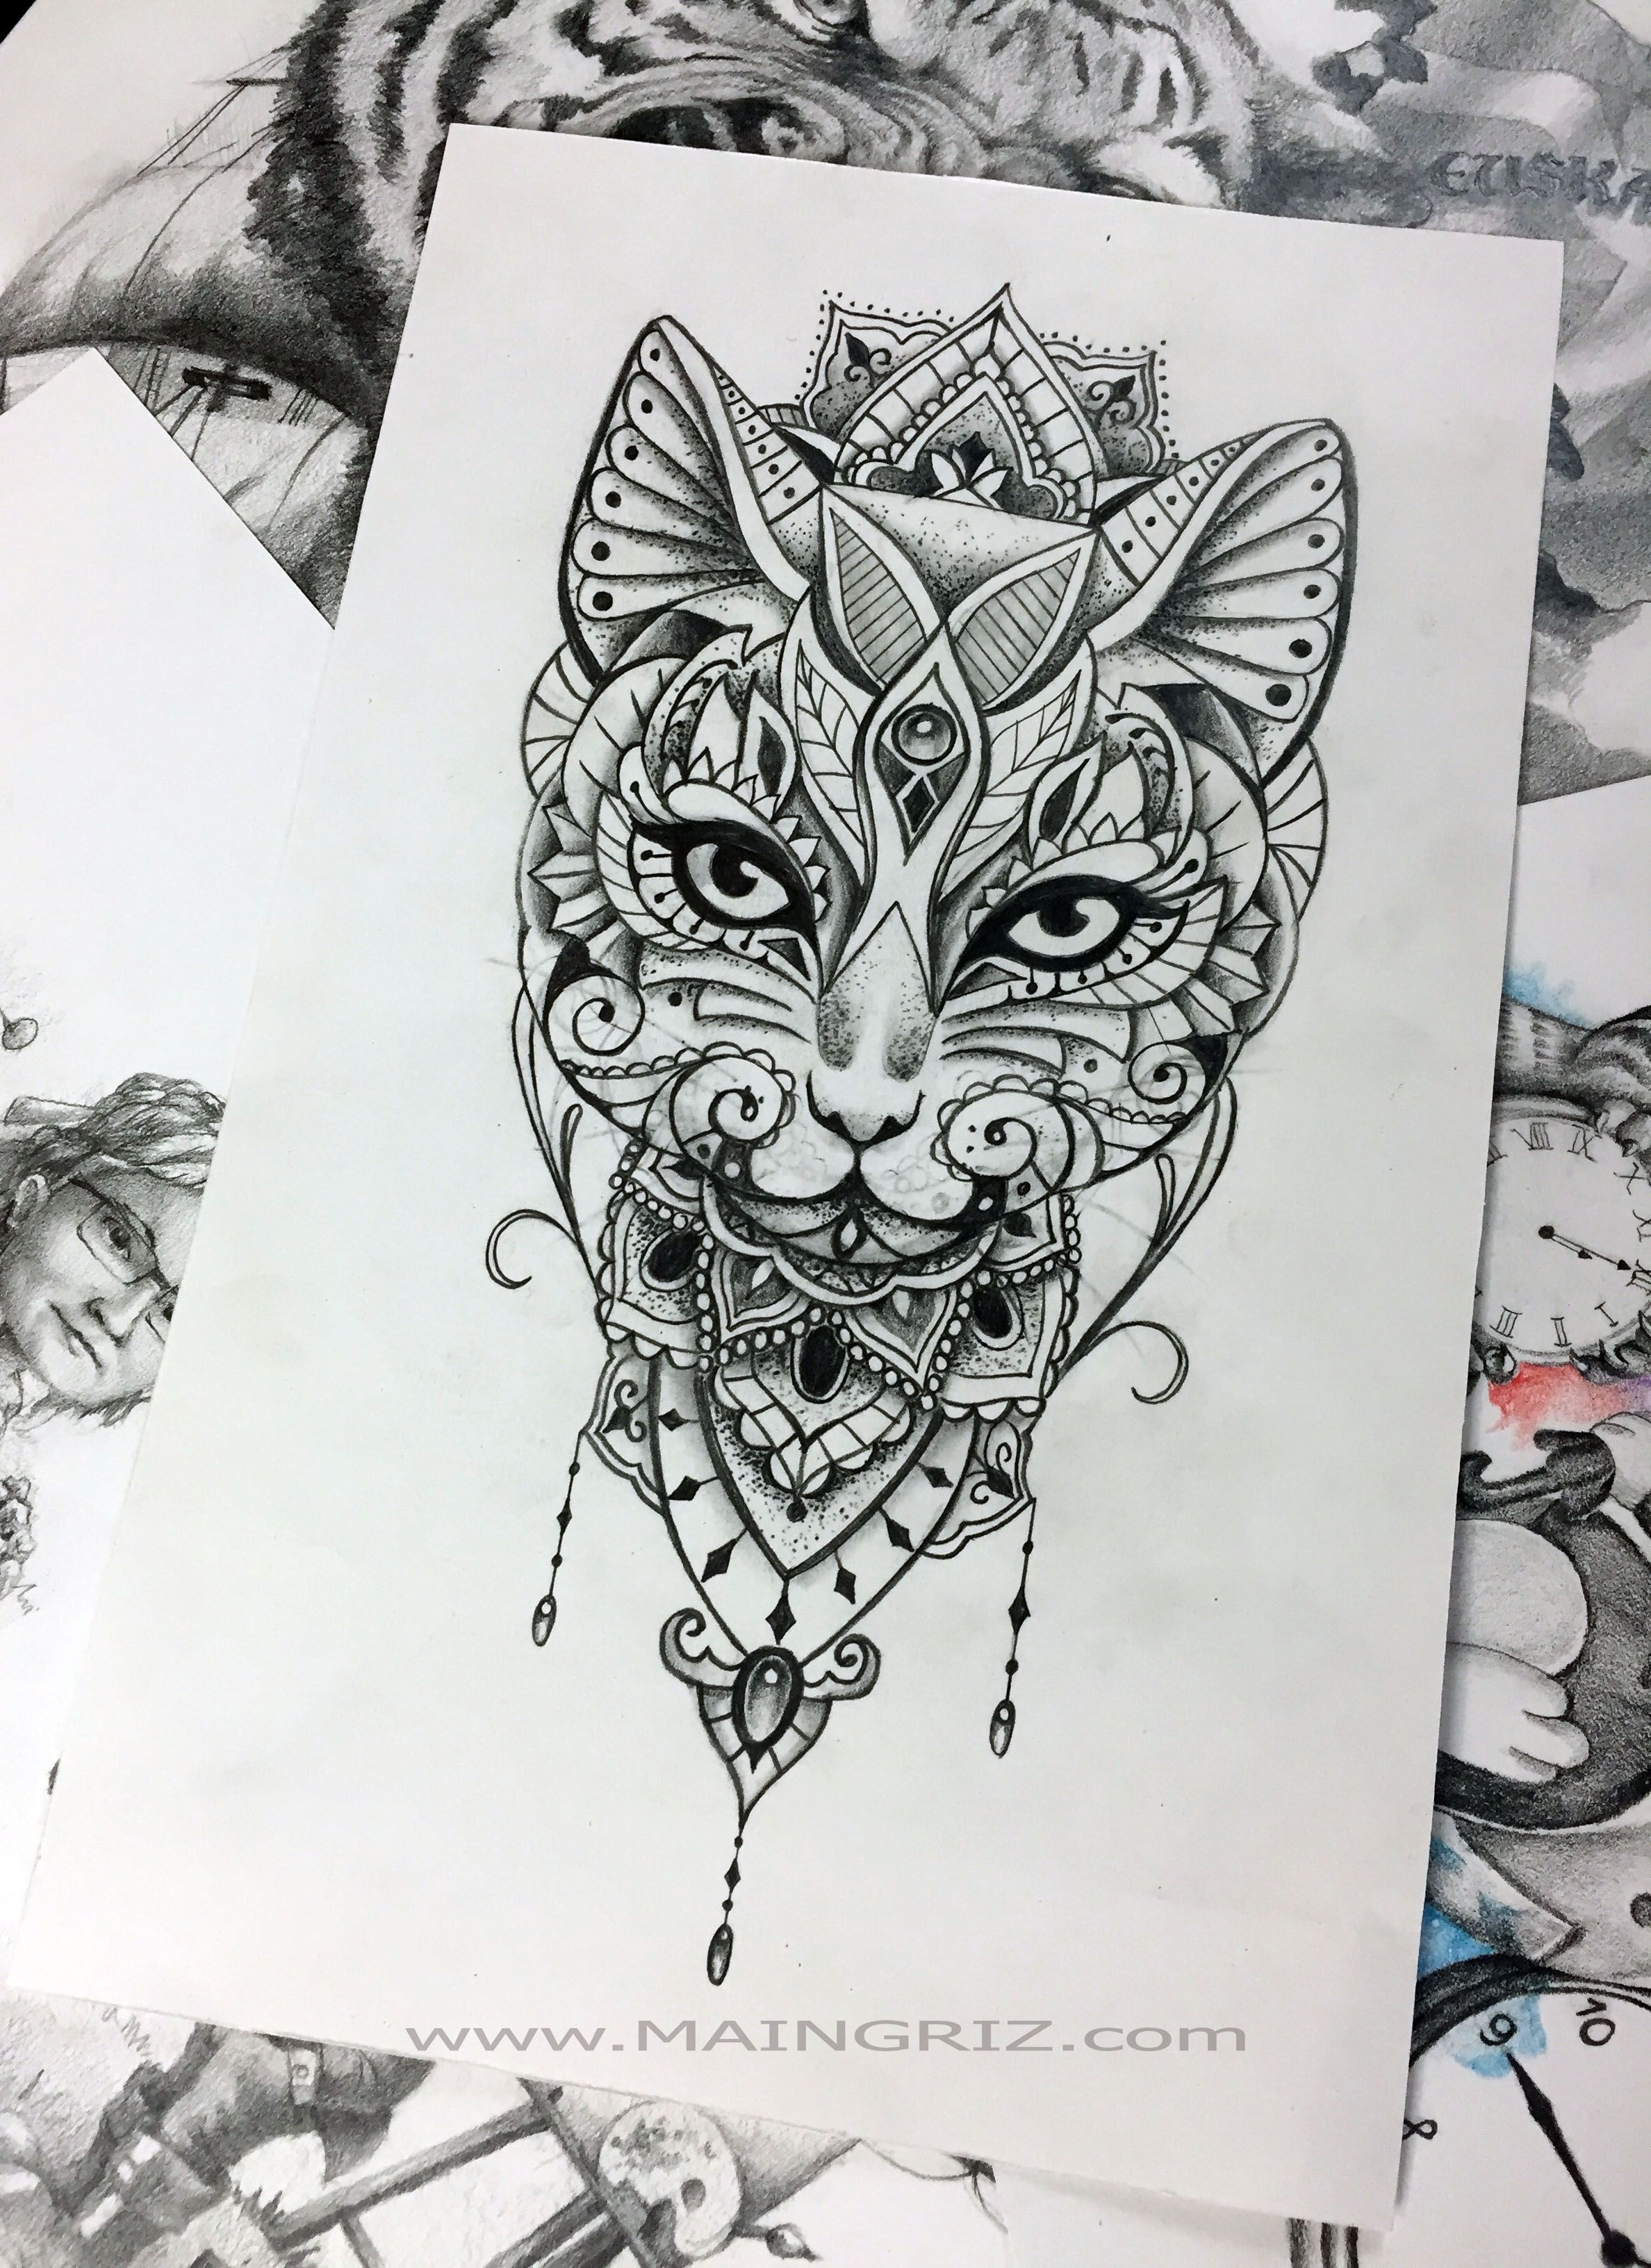 Pin By Stephanha On Tattoos In 2020 Cat Tattoo Designs Mandala Tattoo Design Cat Tattoo